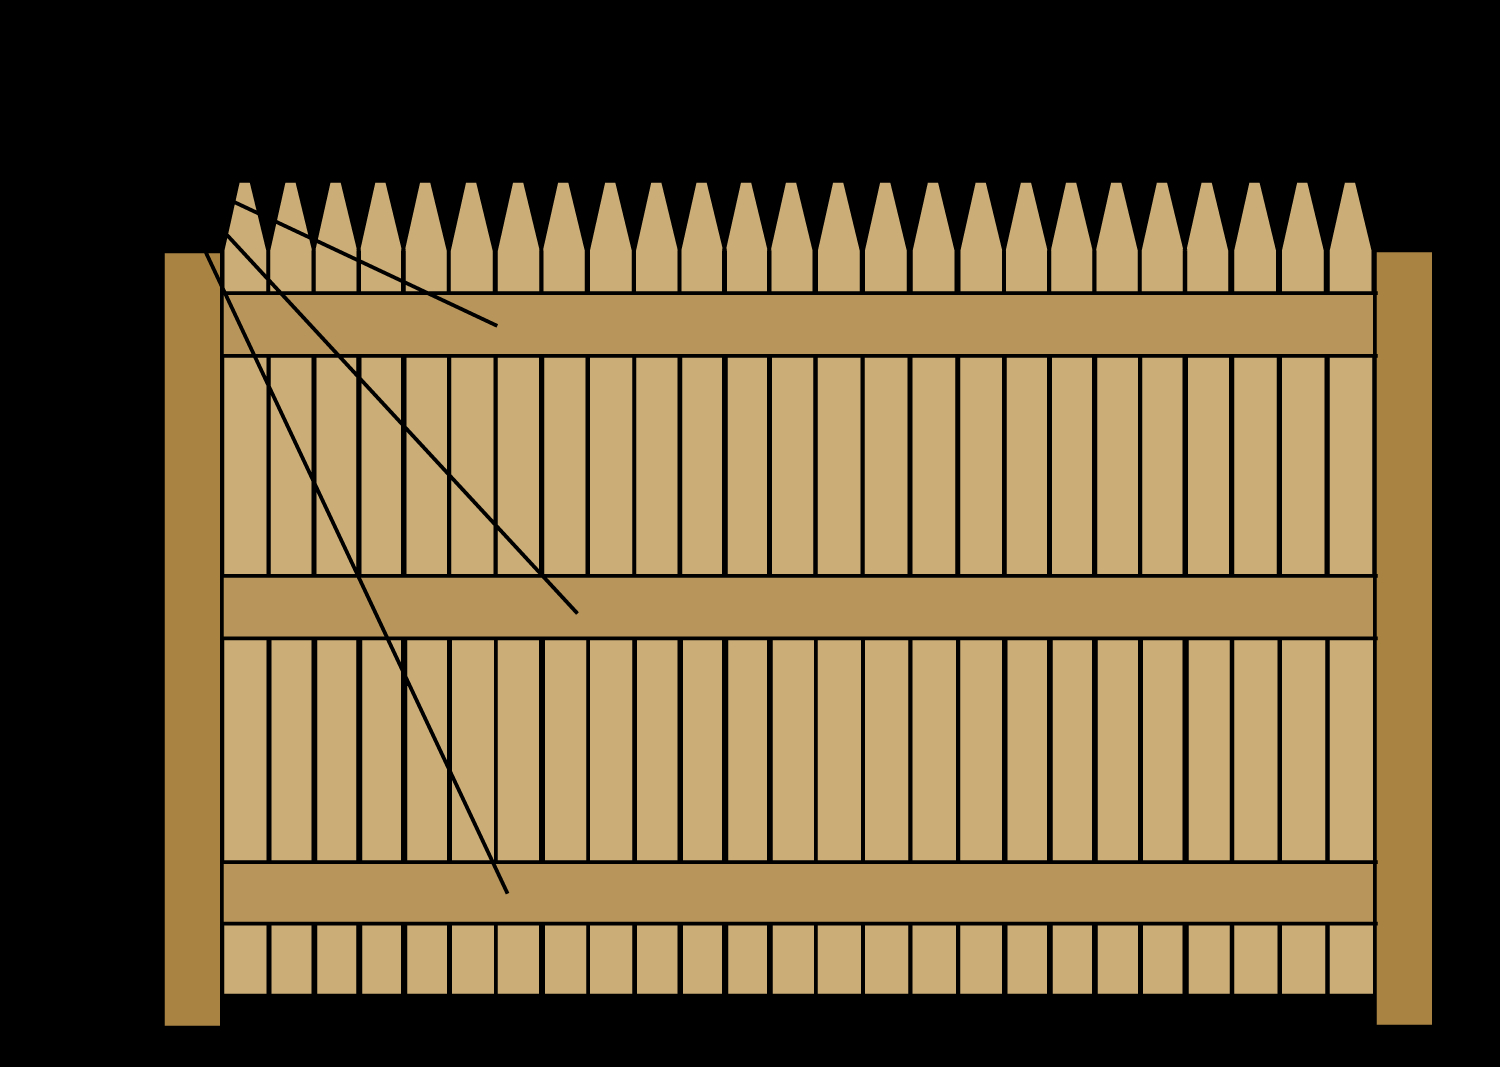 Fence Calculator Estimate Wood Fencing Materials And Post Centers inside 16 Smart Ideas How to Make Backyard Fence Cost Calculator